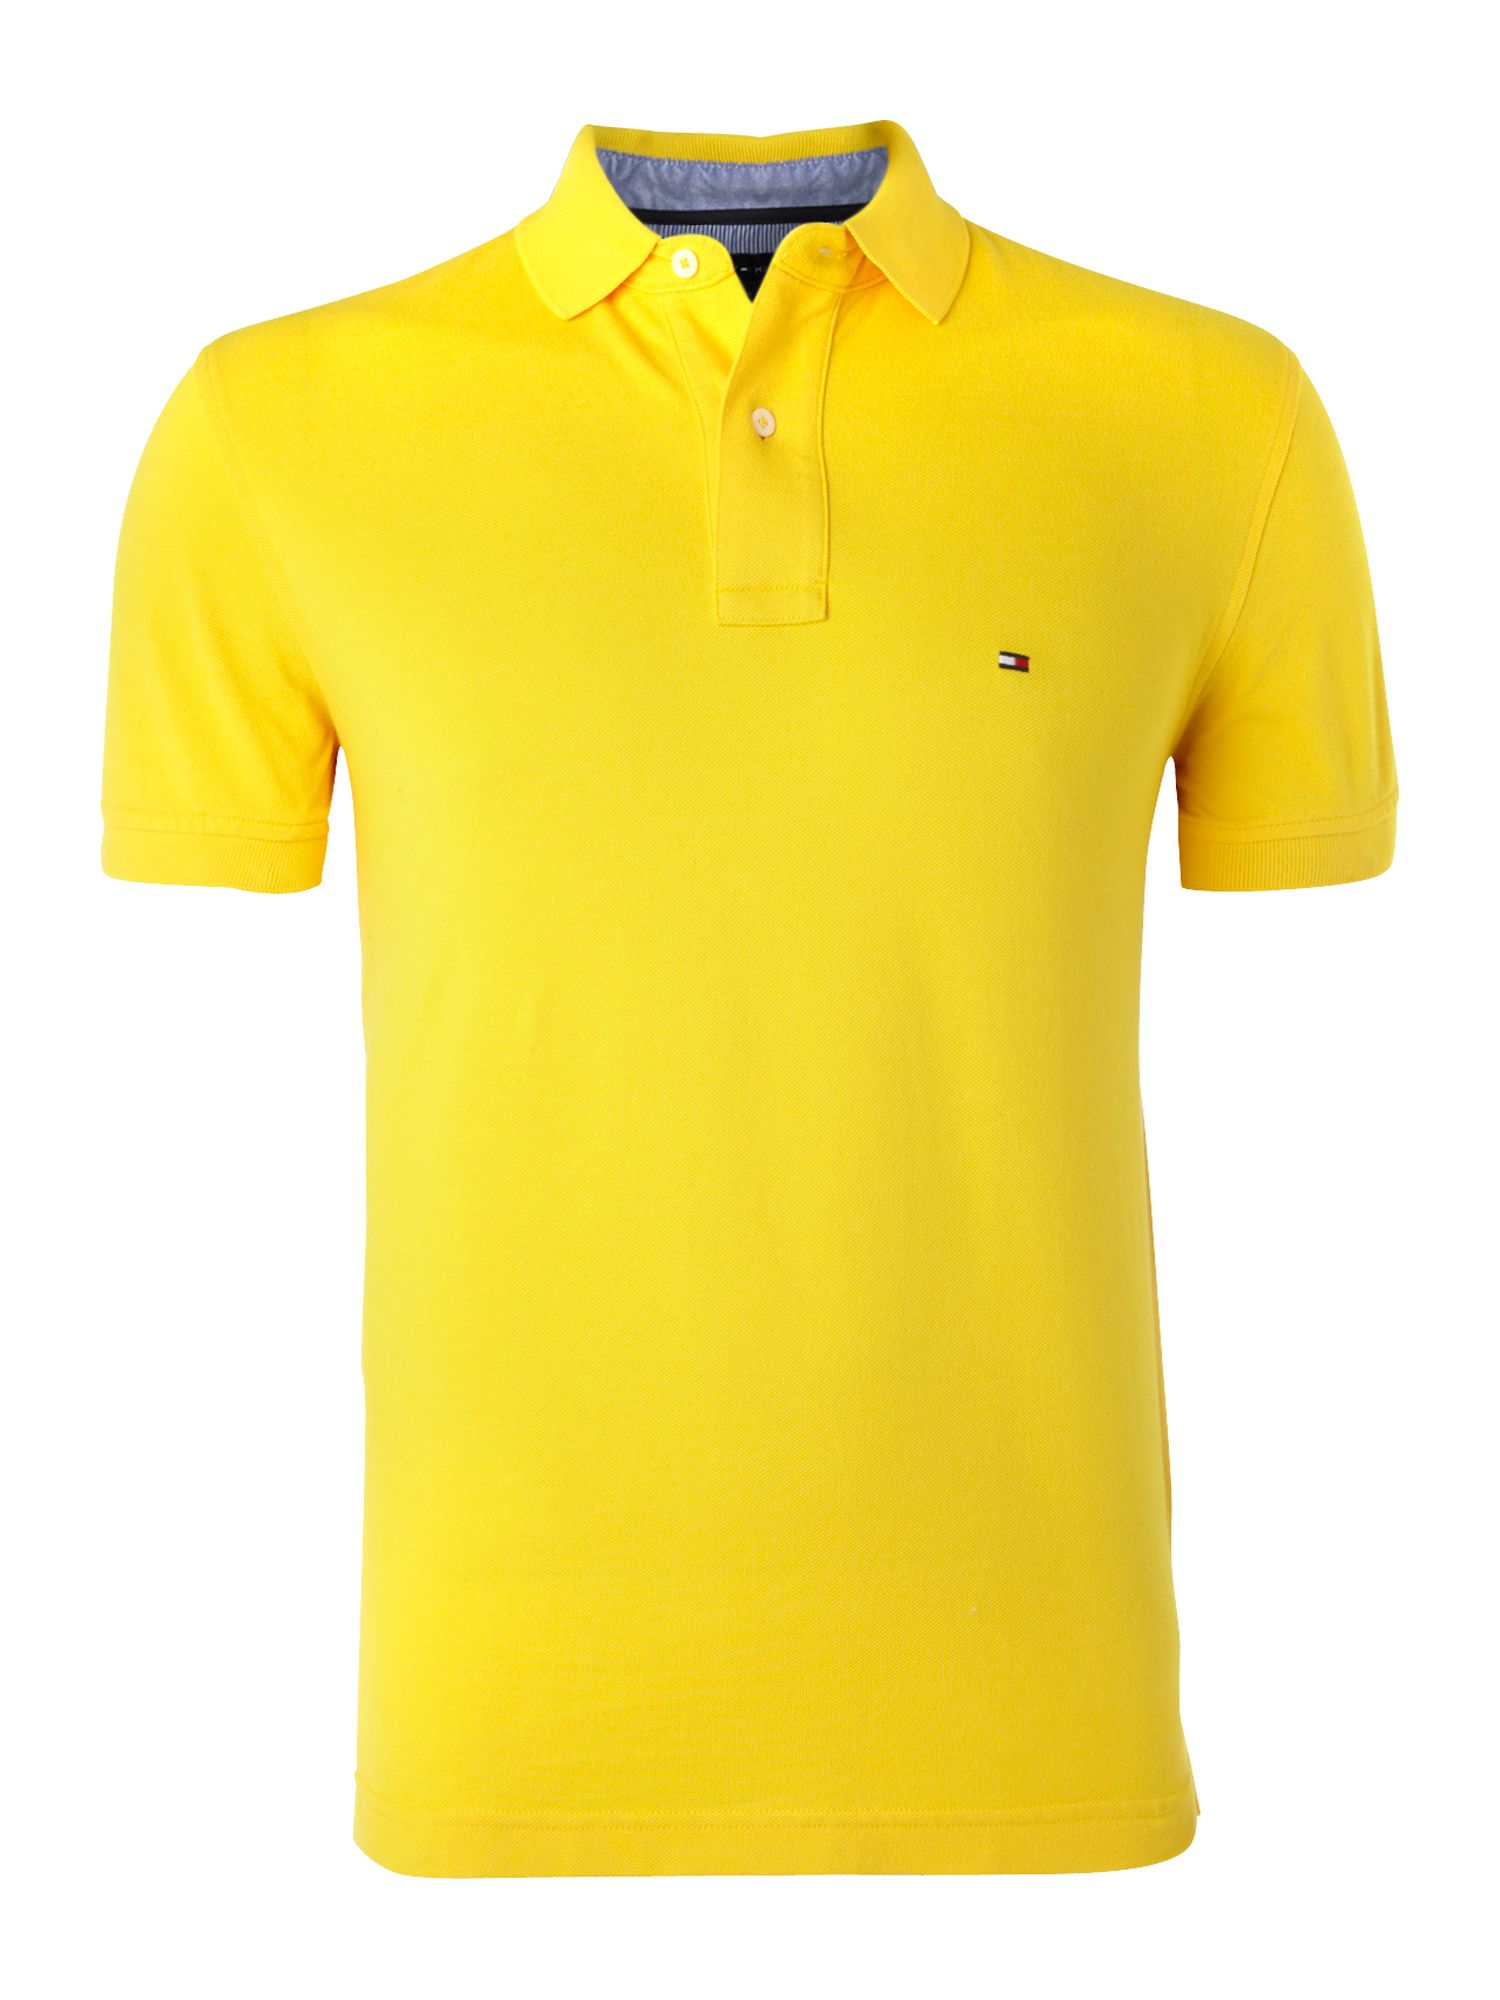 Tommy Hilfiger Shortsleeve Polo Shirt In Yellow For Men Lyst